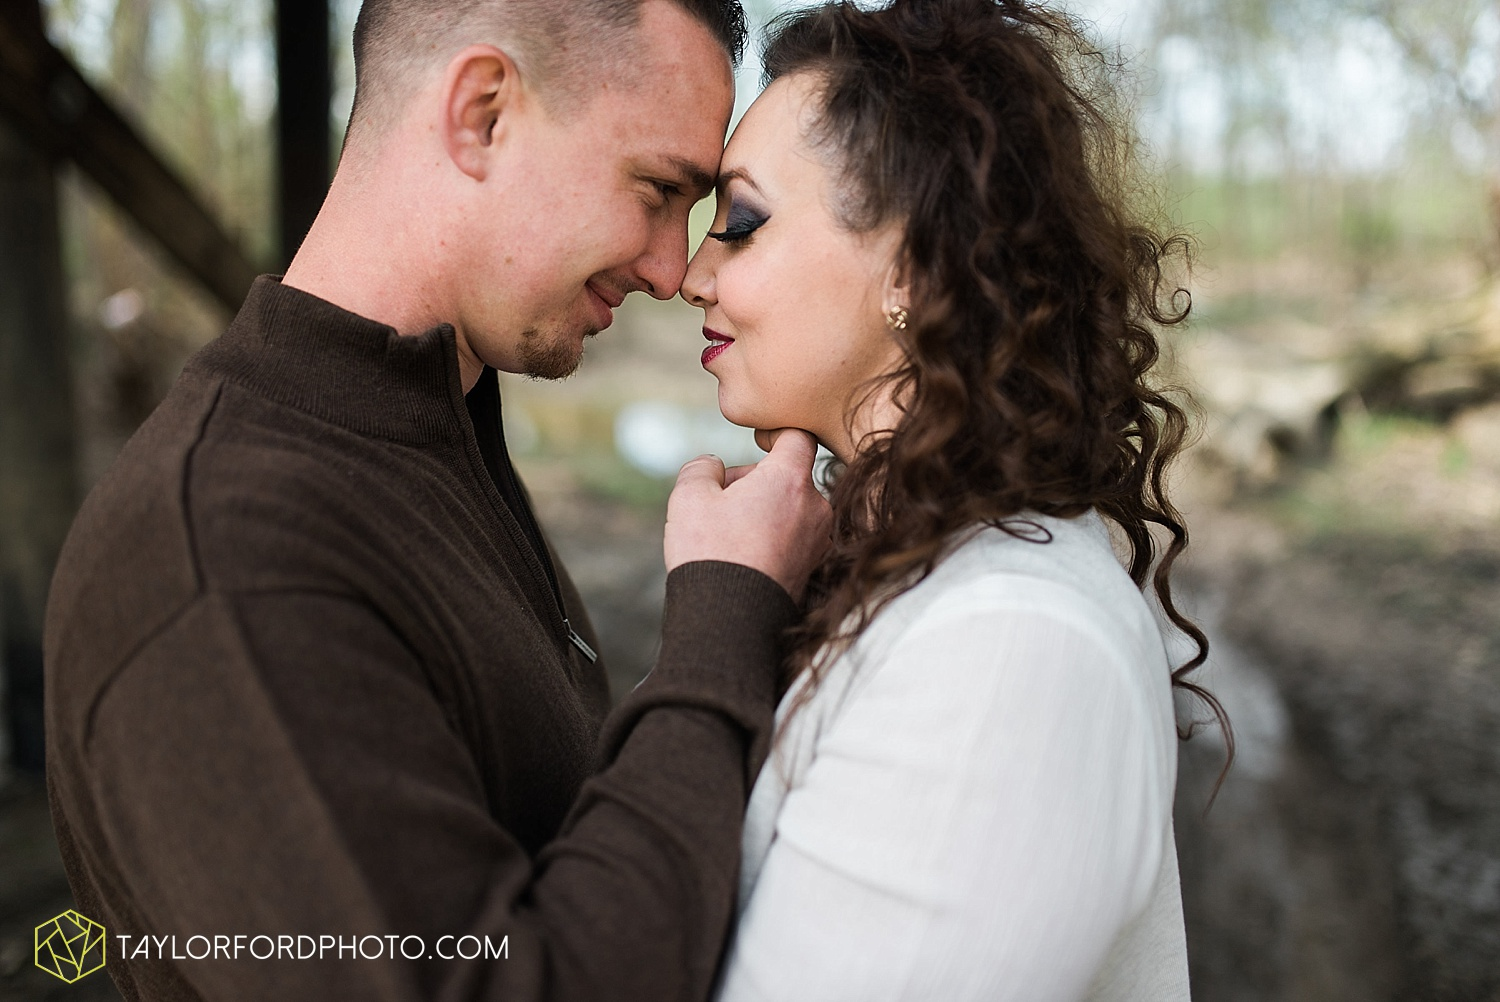 fort-wayne-indiana-engagement-wedding-photographer-taylor-ford-photography_1532.jpg